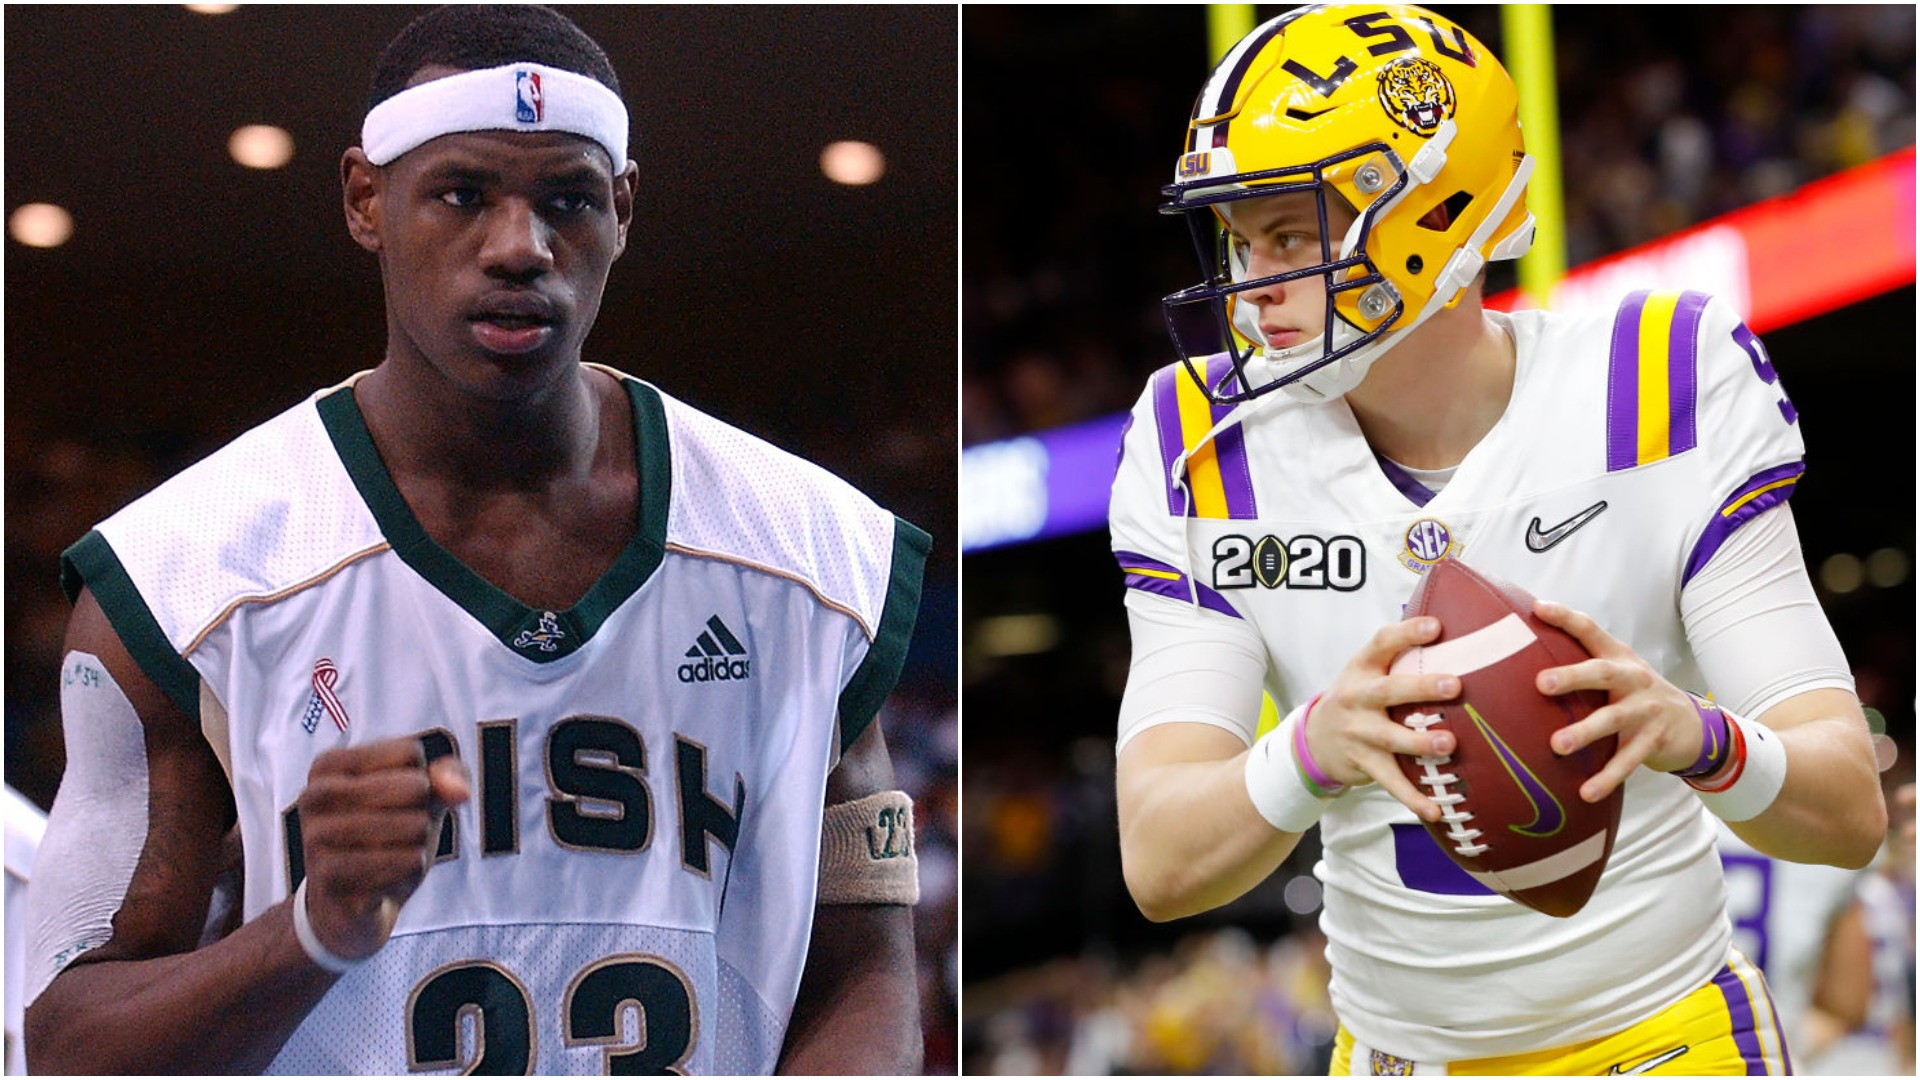 Joe Burrow is going to the Cincinnati Bengals. Looking at his path to becoming a pro, it is pretty similar to the path of LeBron James.